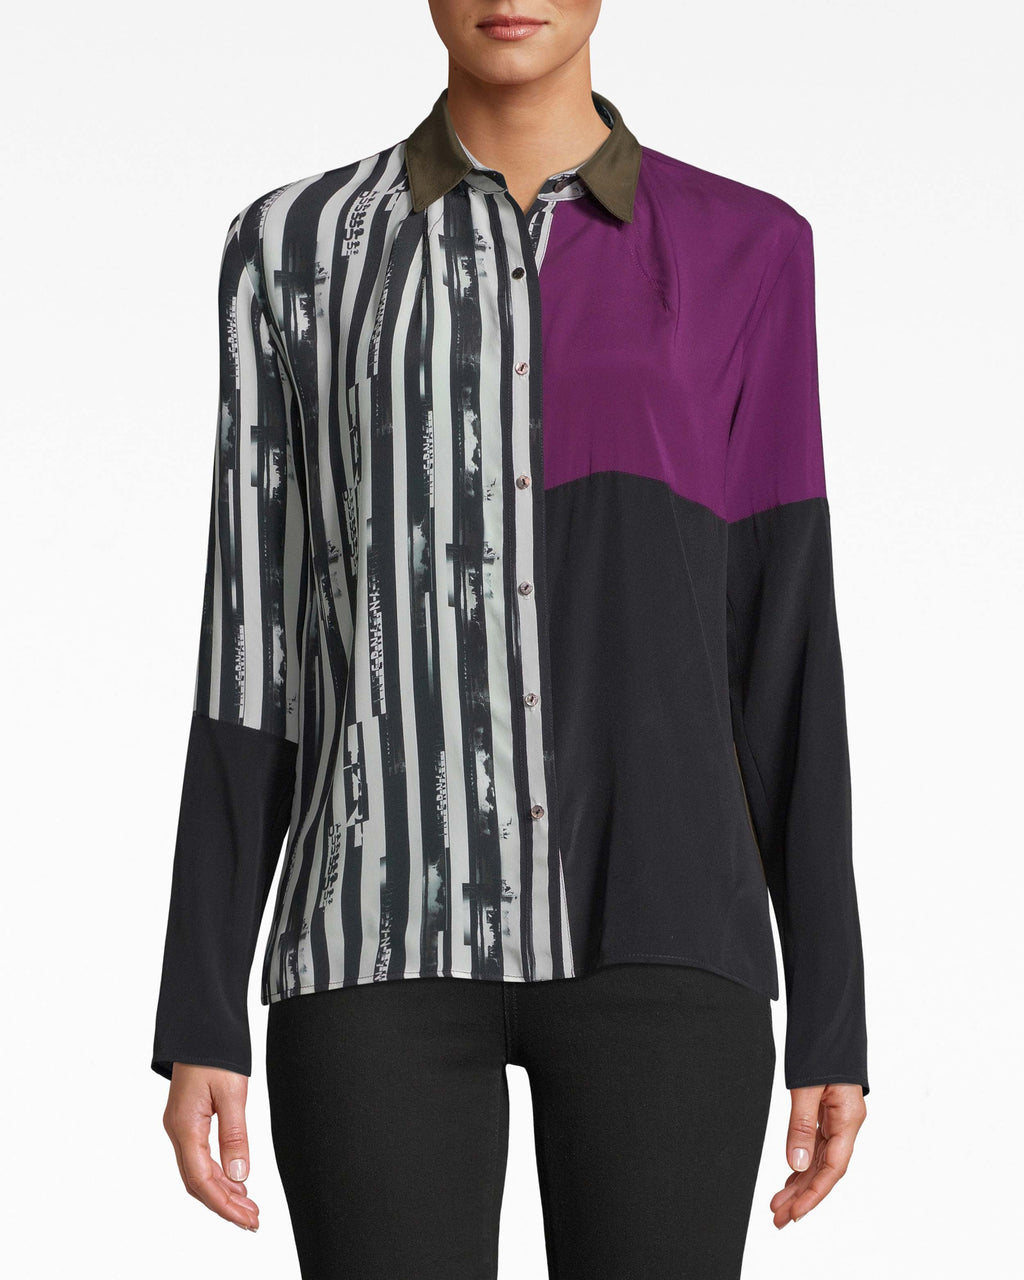 BE10394 - UP AND UP STRIPE BOYFRIEND BLOUSE - tops - blouses - Up and away. Contrasting prints make the best of both worlds on this chic boyfriend blouse. Pair back with simple bottoms.